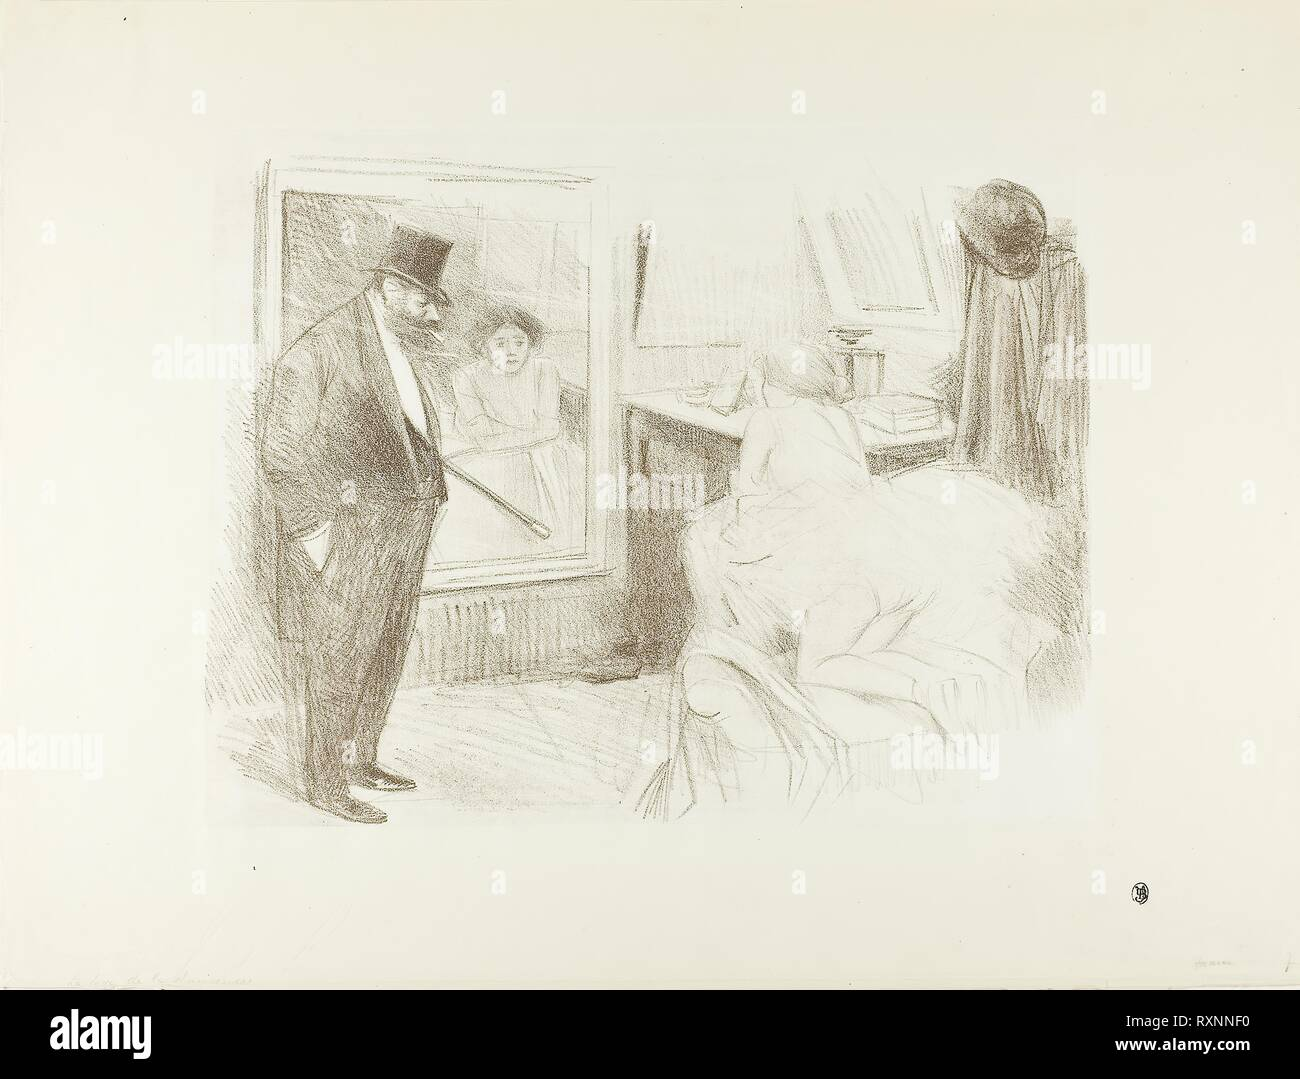 Dancer's Dressing Room, Second Plate. Jean Louis Forain; French, 1852-1931. Date: 1894. Dimensions: 280 × 353 mm (image); 395 × 526 mm (sheet). Lithograph in brown on white vellum paper. Origin: France. Museum: The Chicago Art Institute. - Stock Image